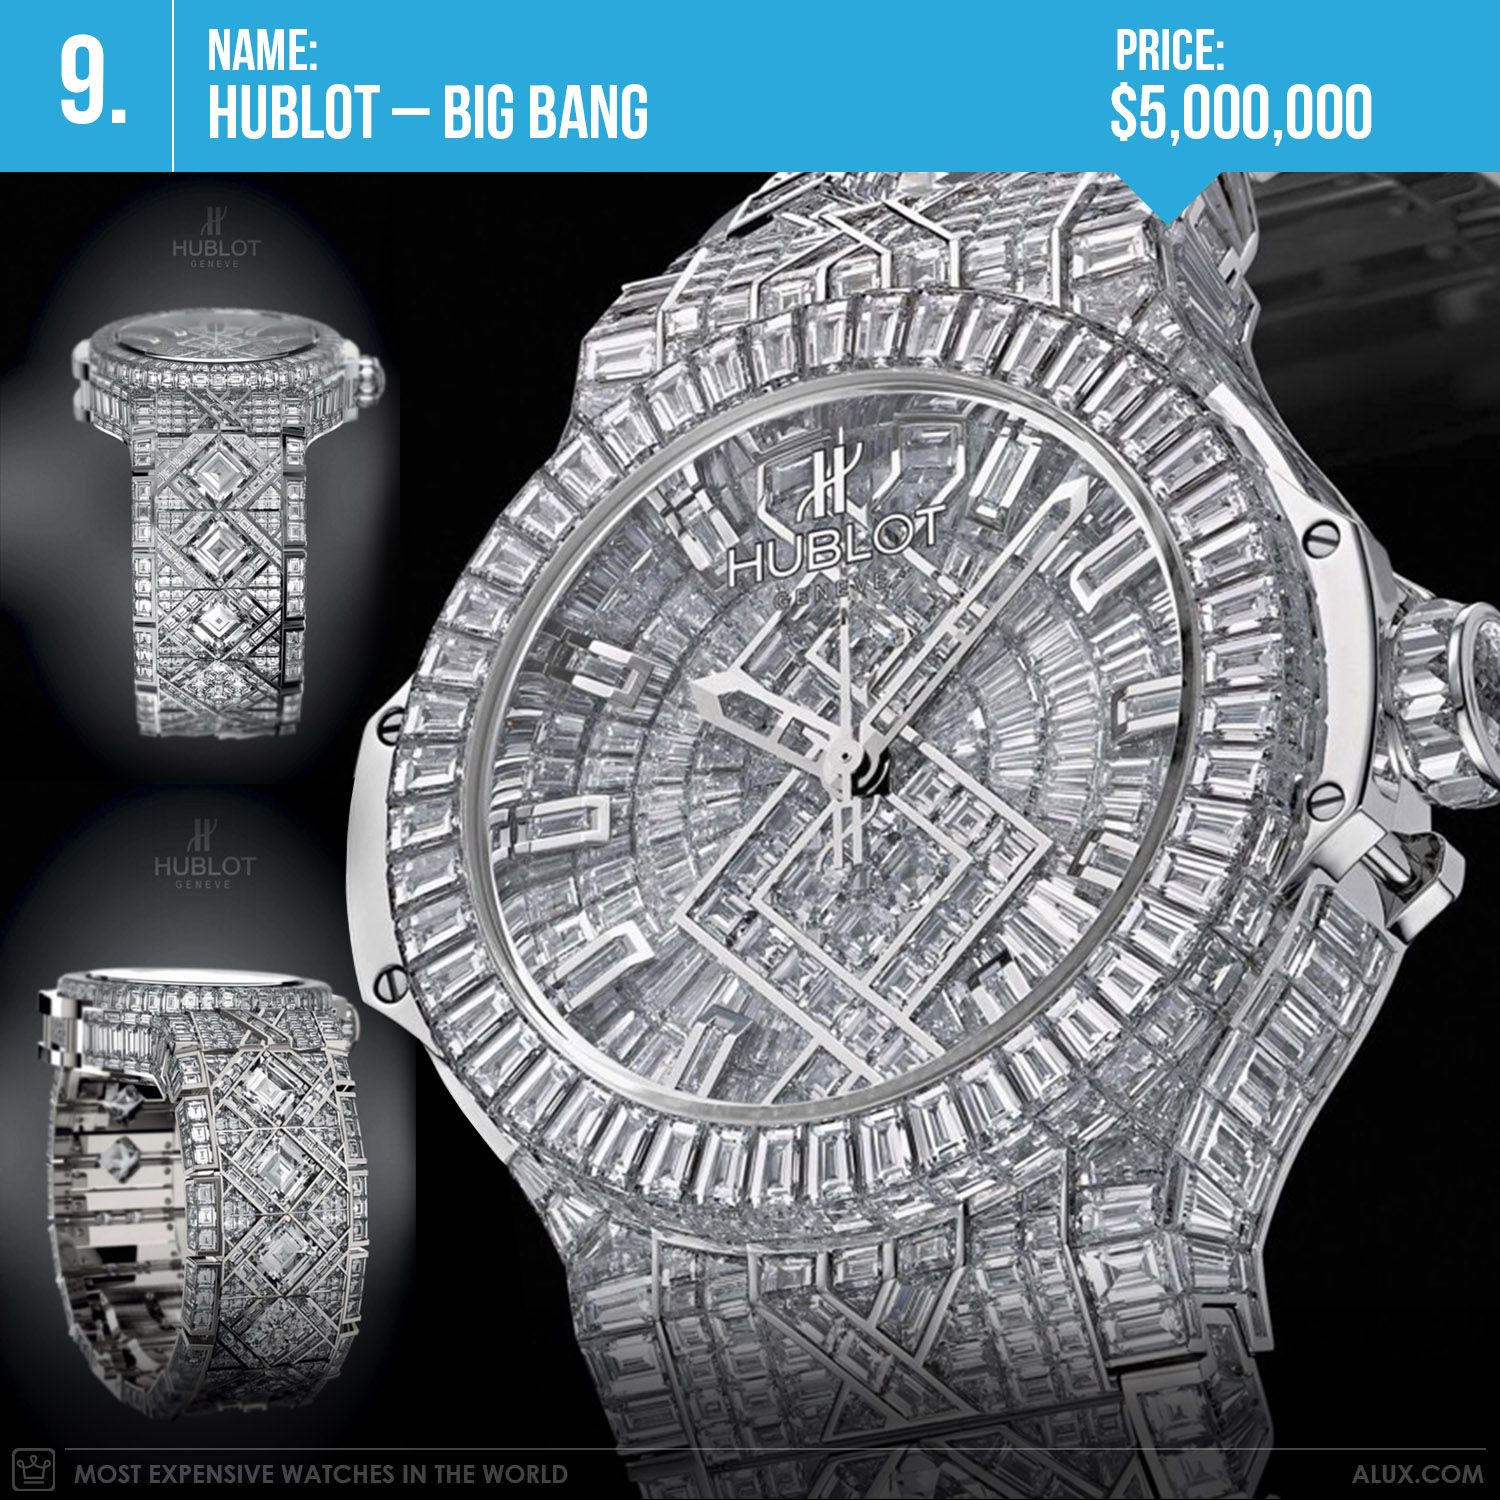 Most Expensive Watch In The World With Price >> Most Expensive Watches In The World 2017 Hublot Big Bang Diamond